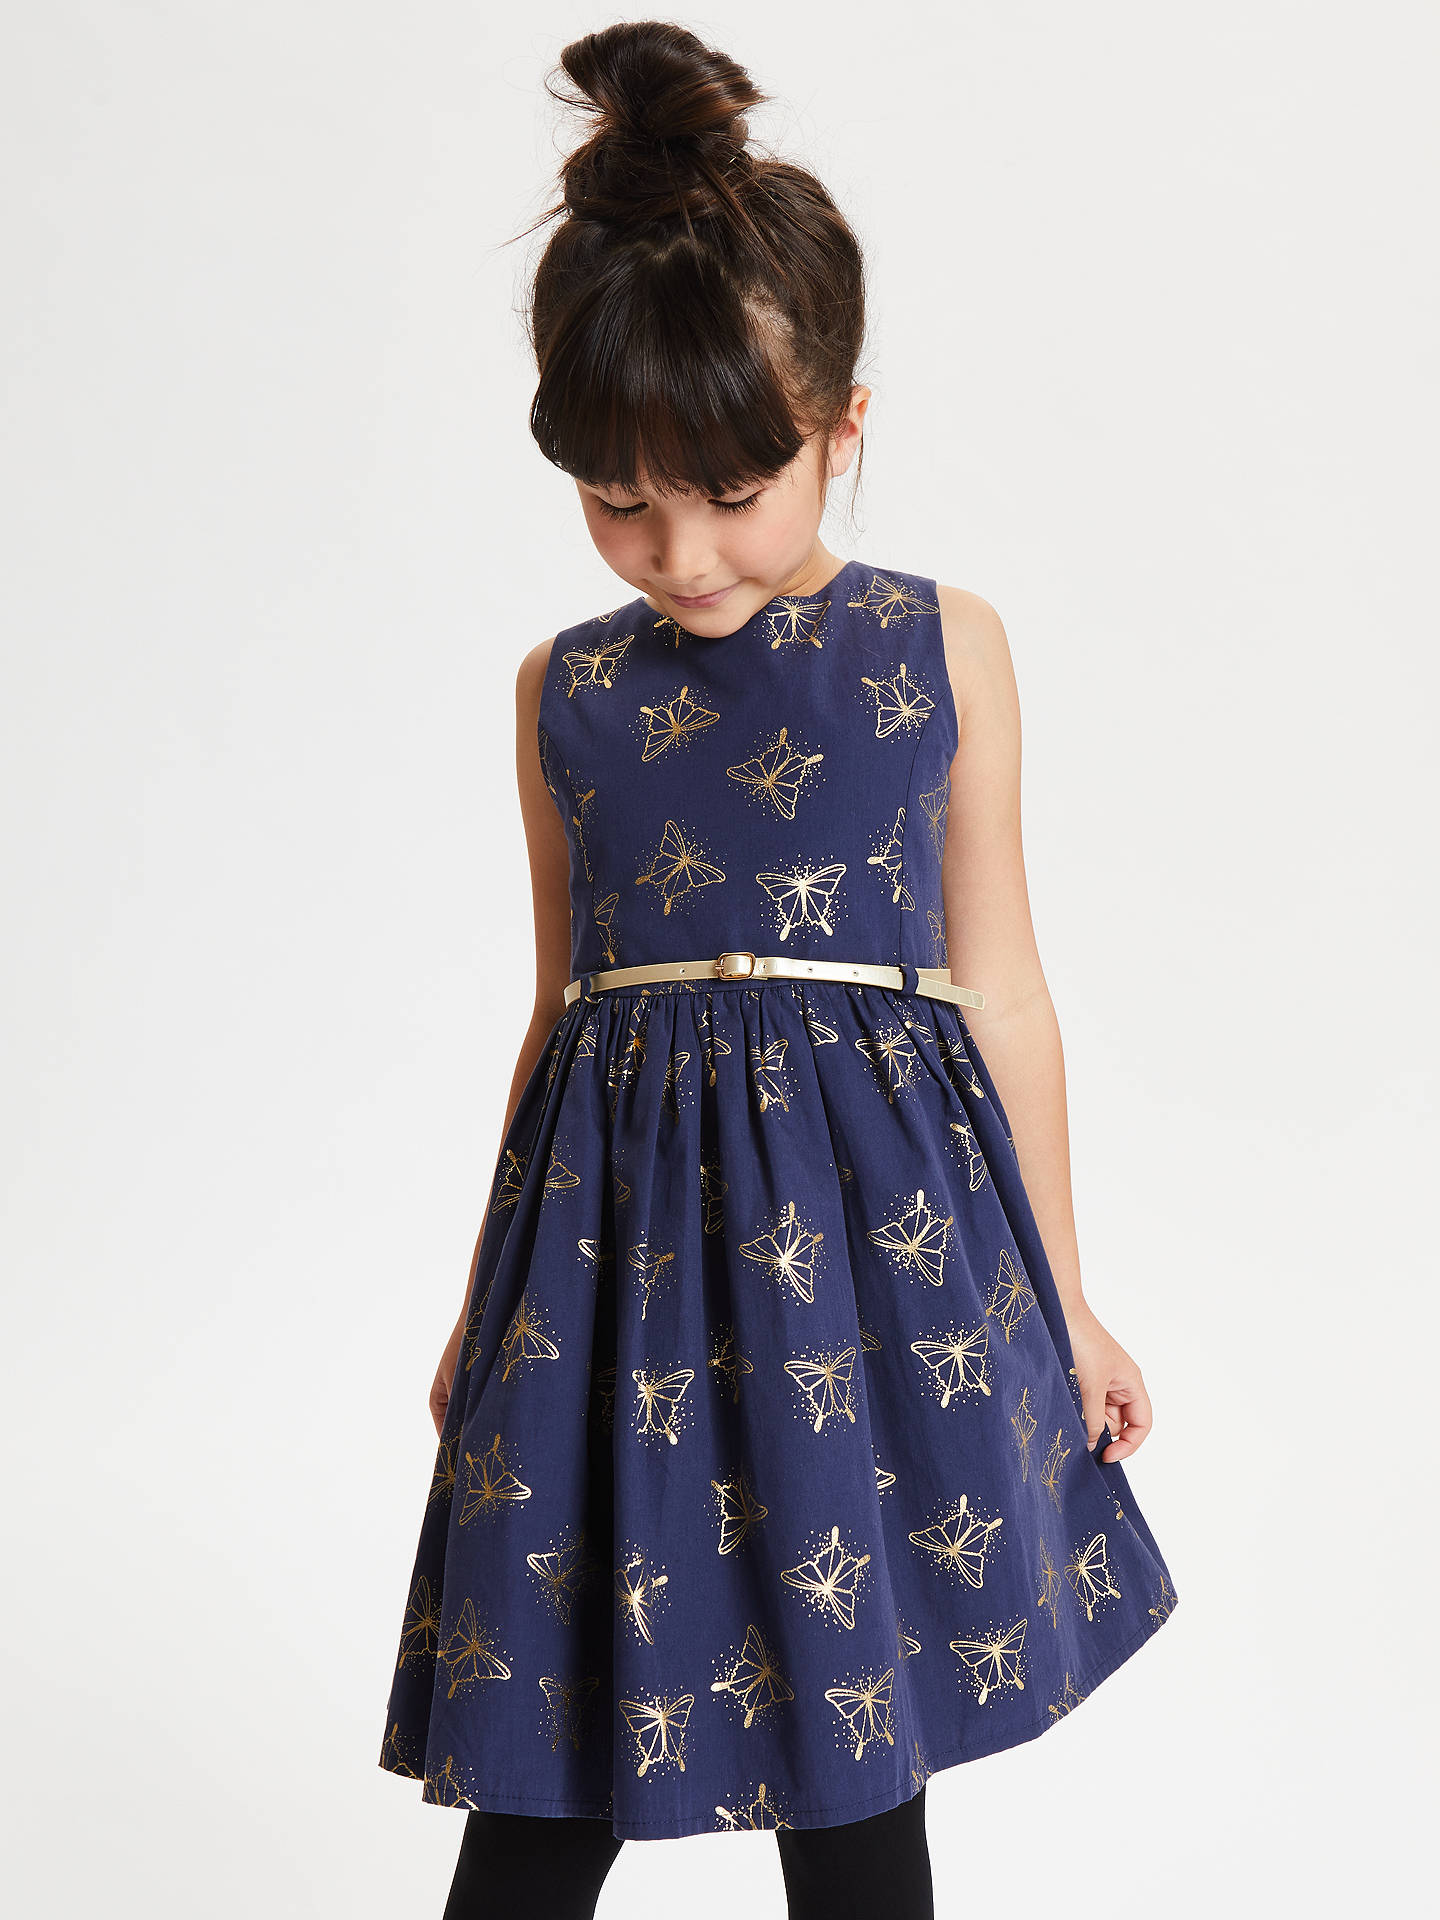 Buy John Lewis & Partners Girls' Prom Dress, Navy, 4 years Online at johnlewis.com